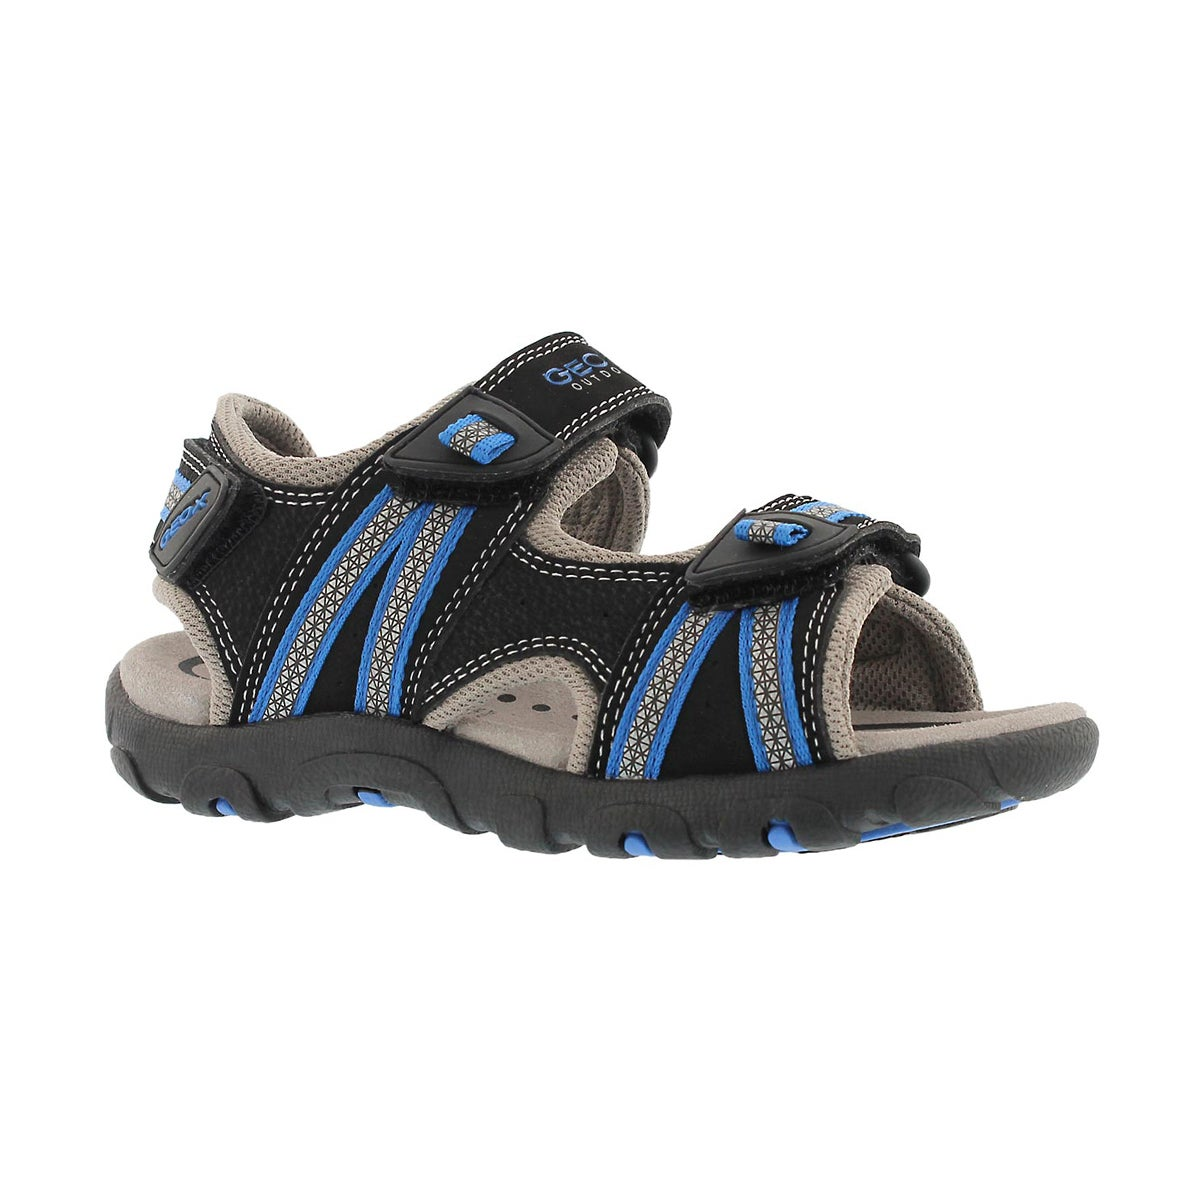 Boys' STRADA black/royal blue sport sandals